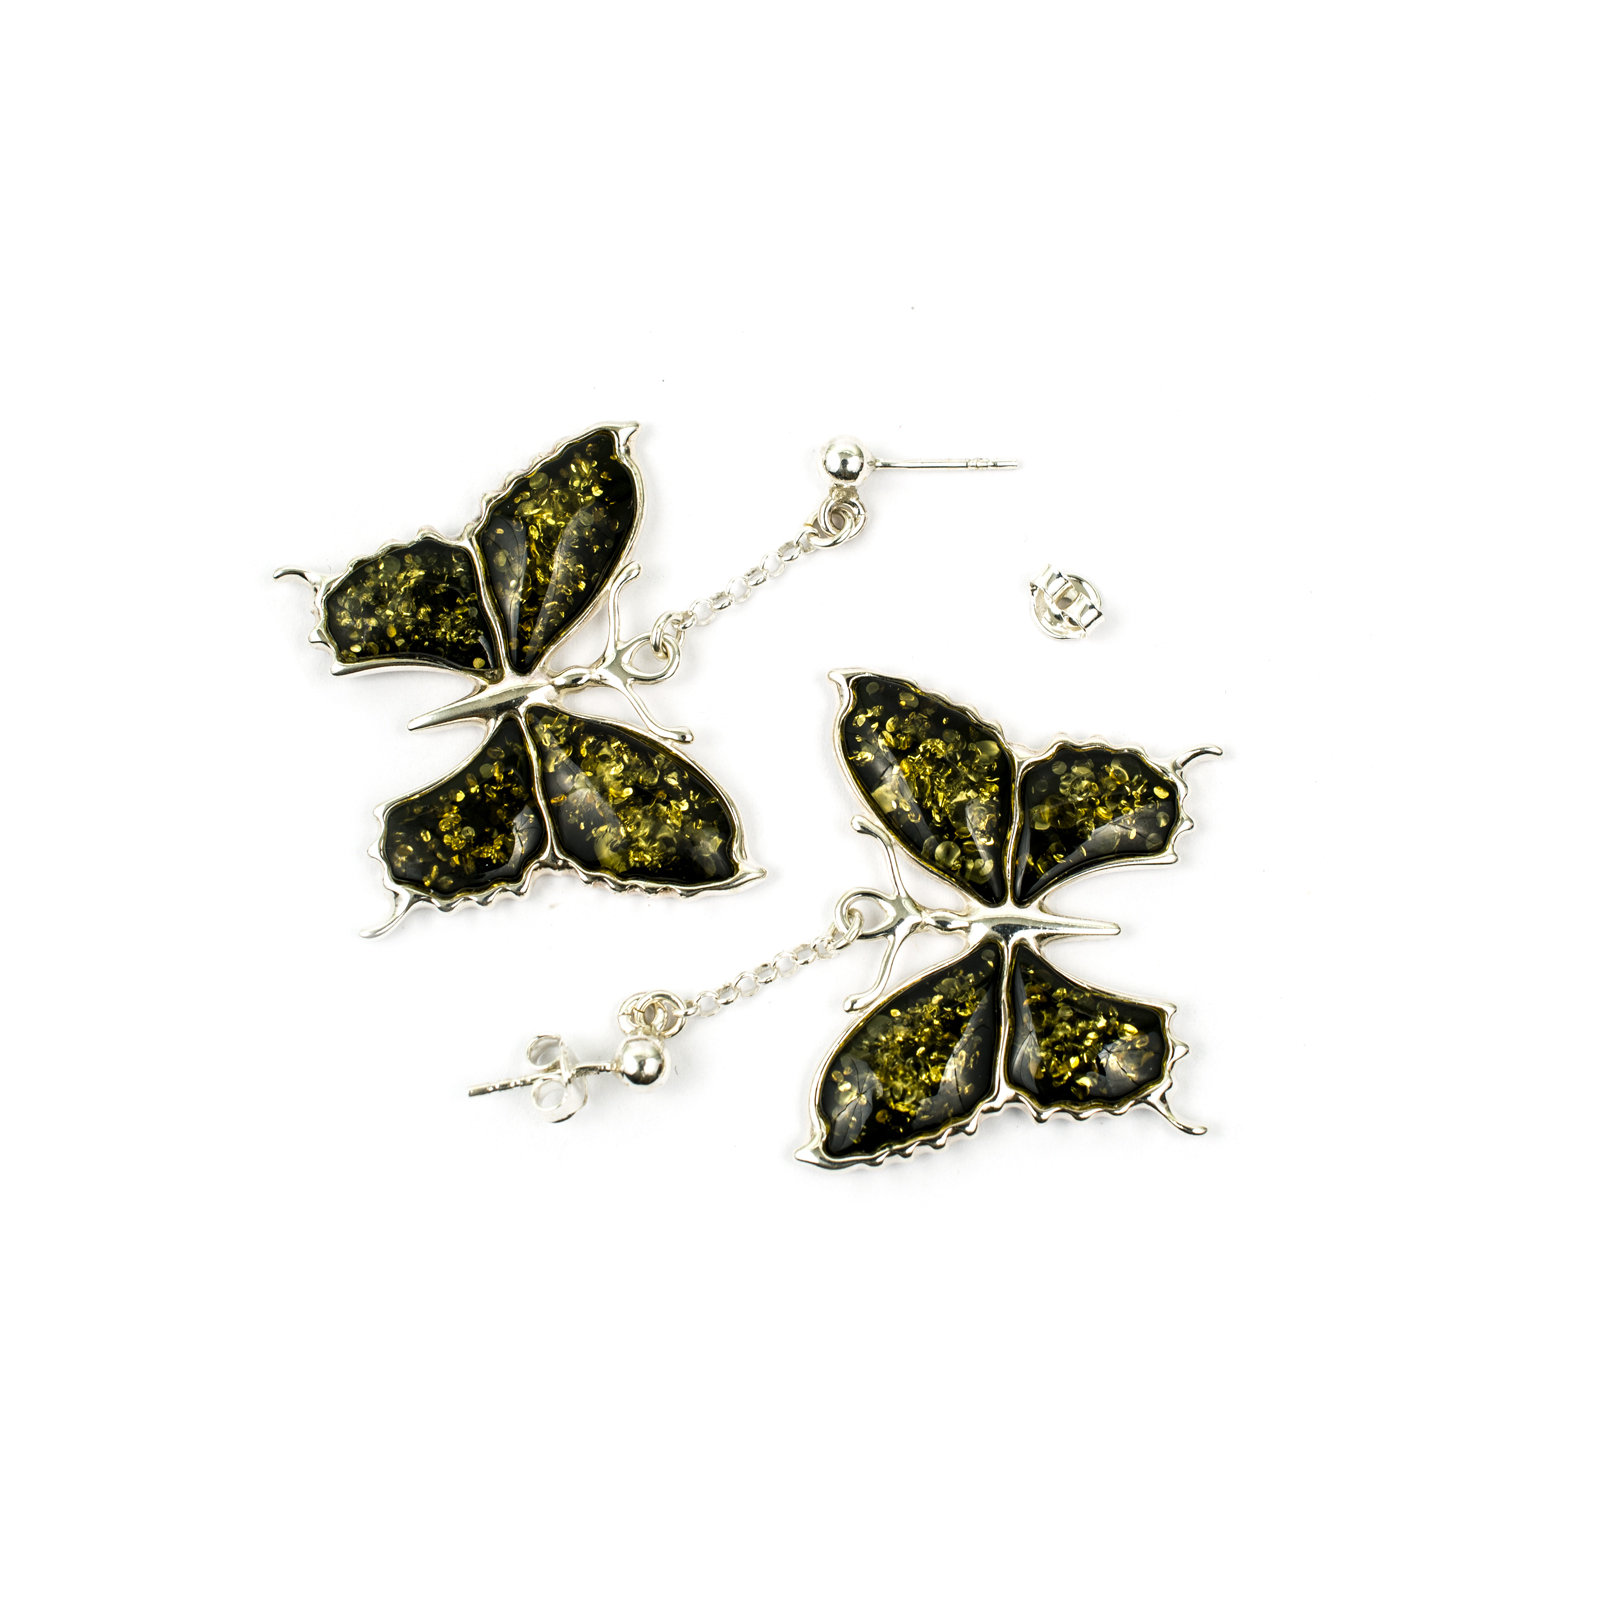 Amazing Butterfly Silver Earrings with Sparkling Green Amber